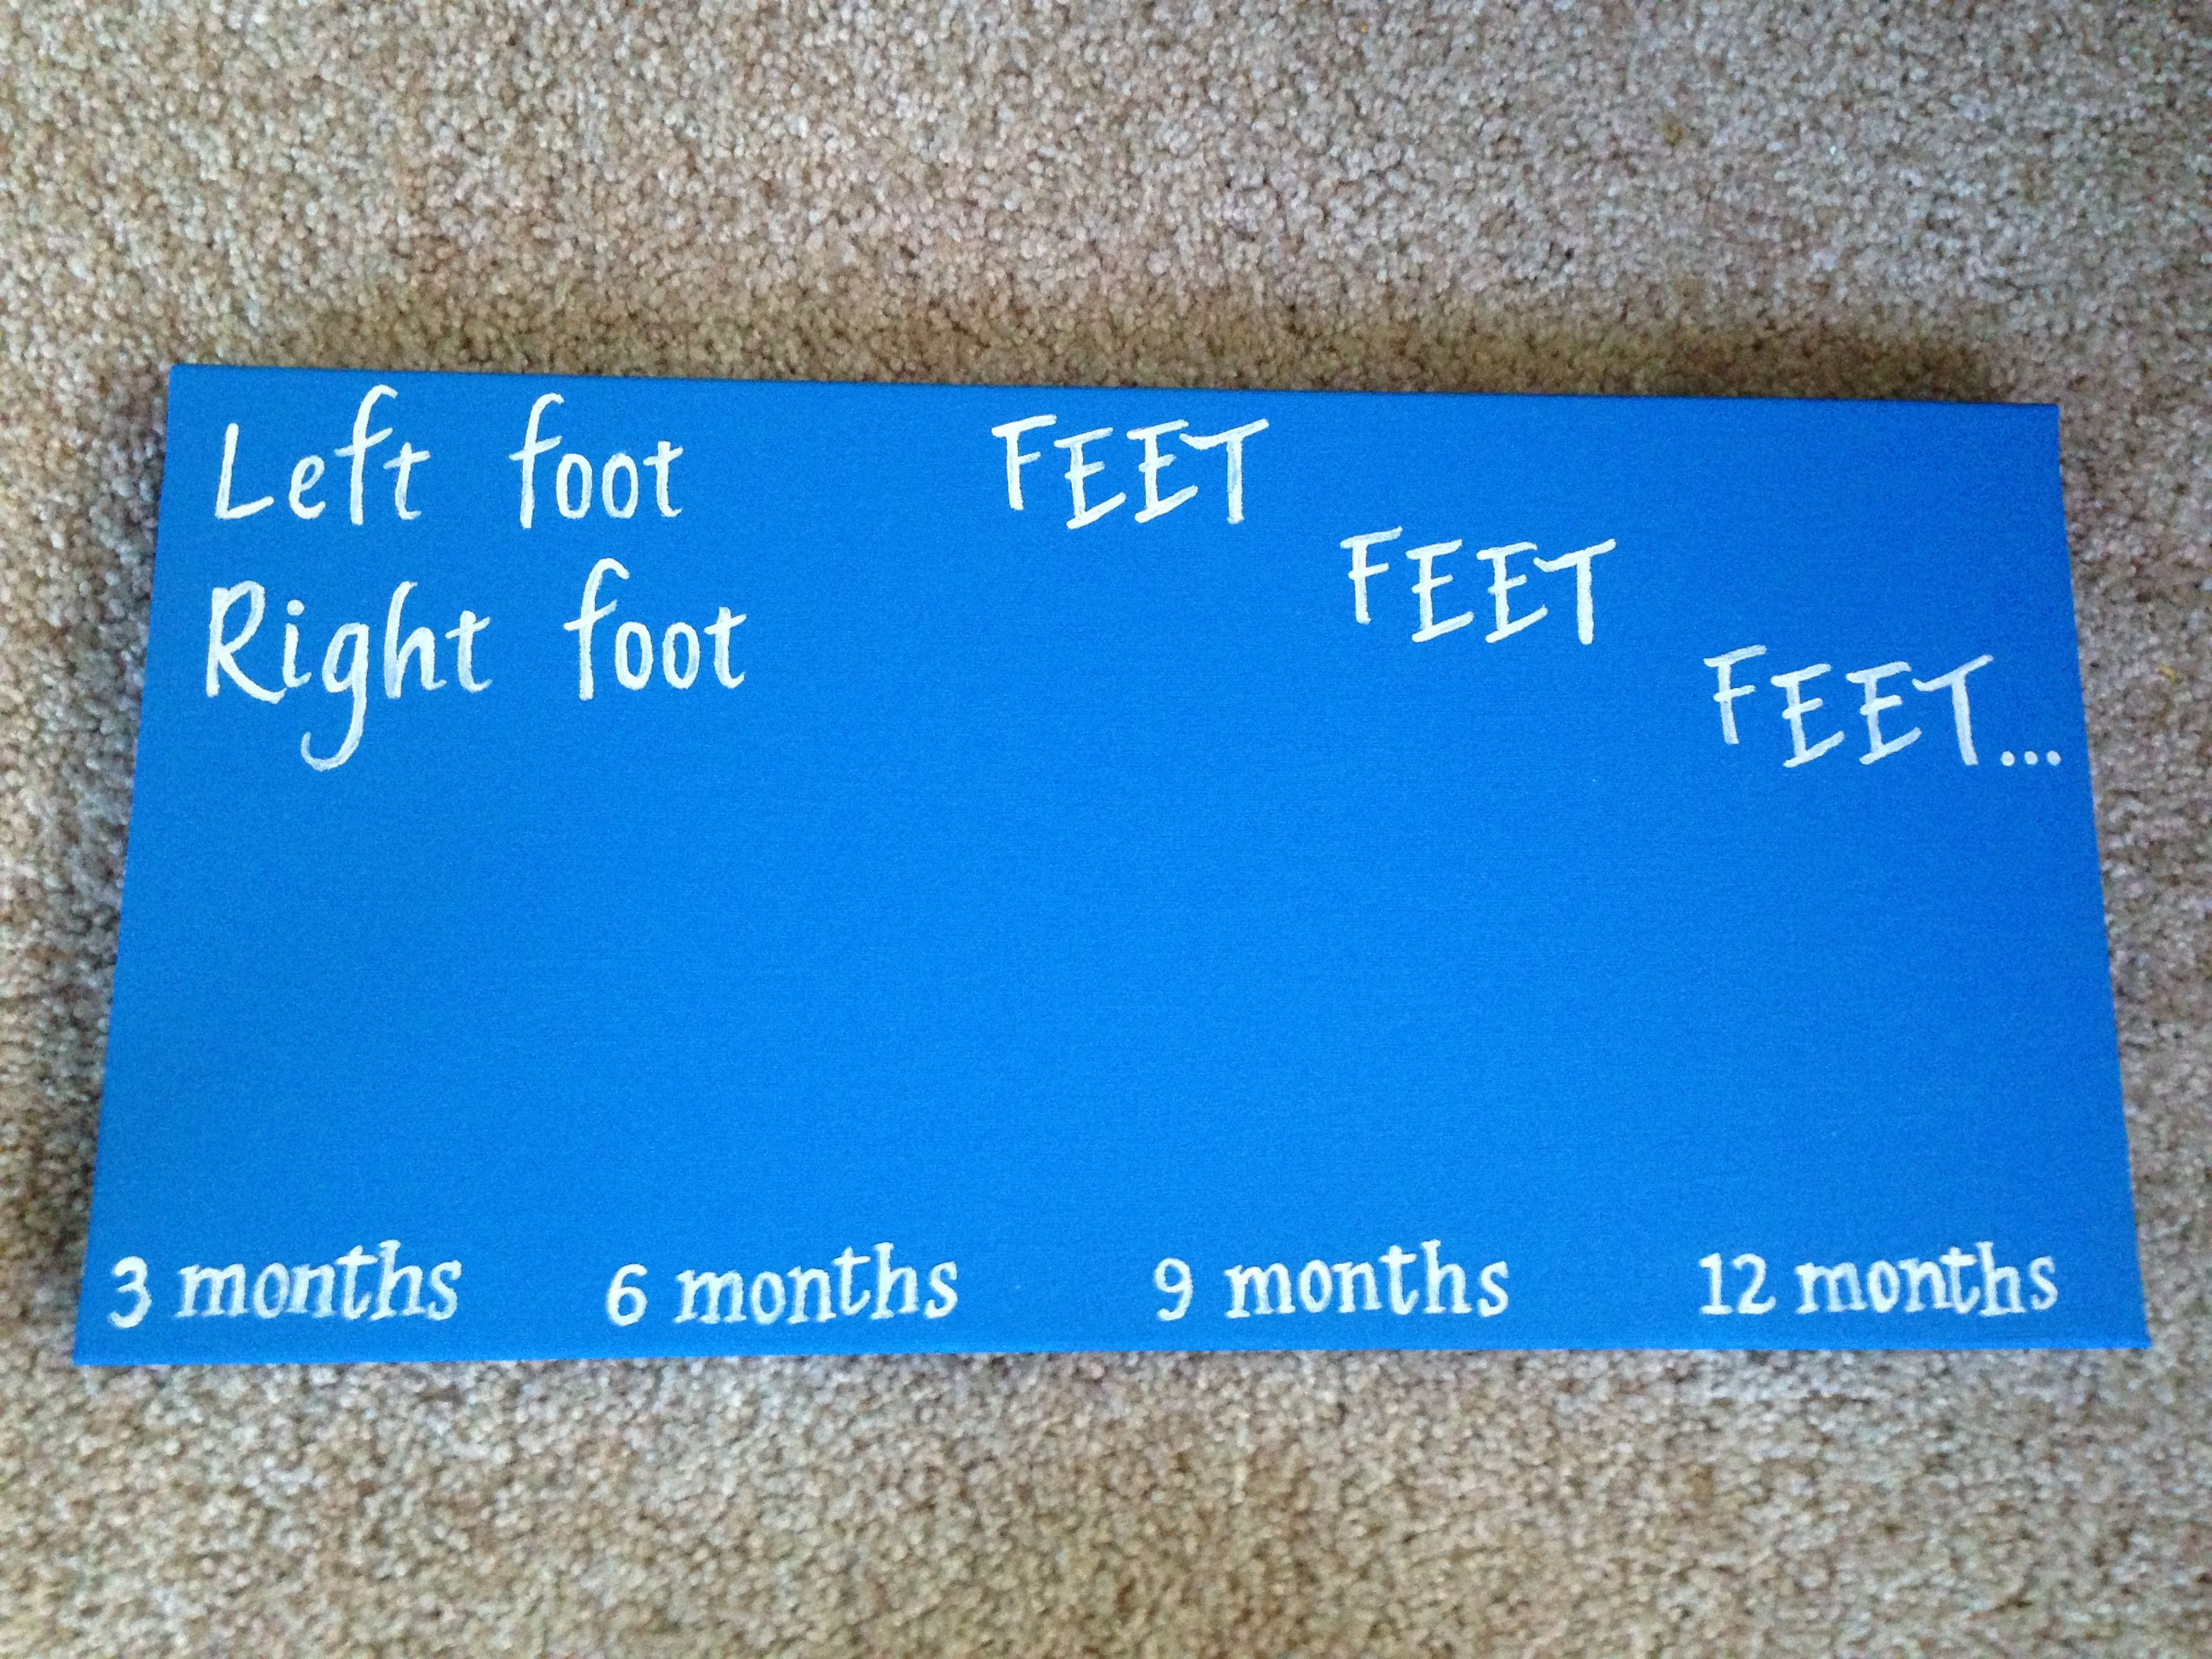 Dr Seuss 'Foot Book' inspired canvas to track baby's footprints :) perfect for a Seuss nursery!